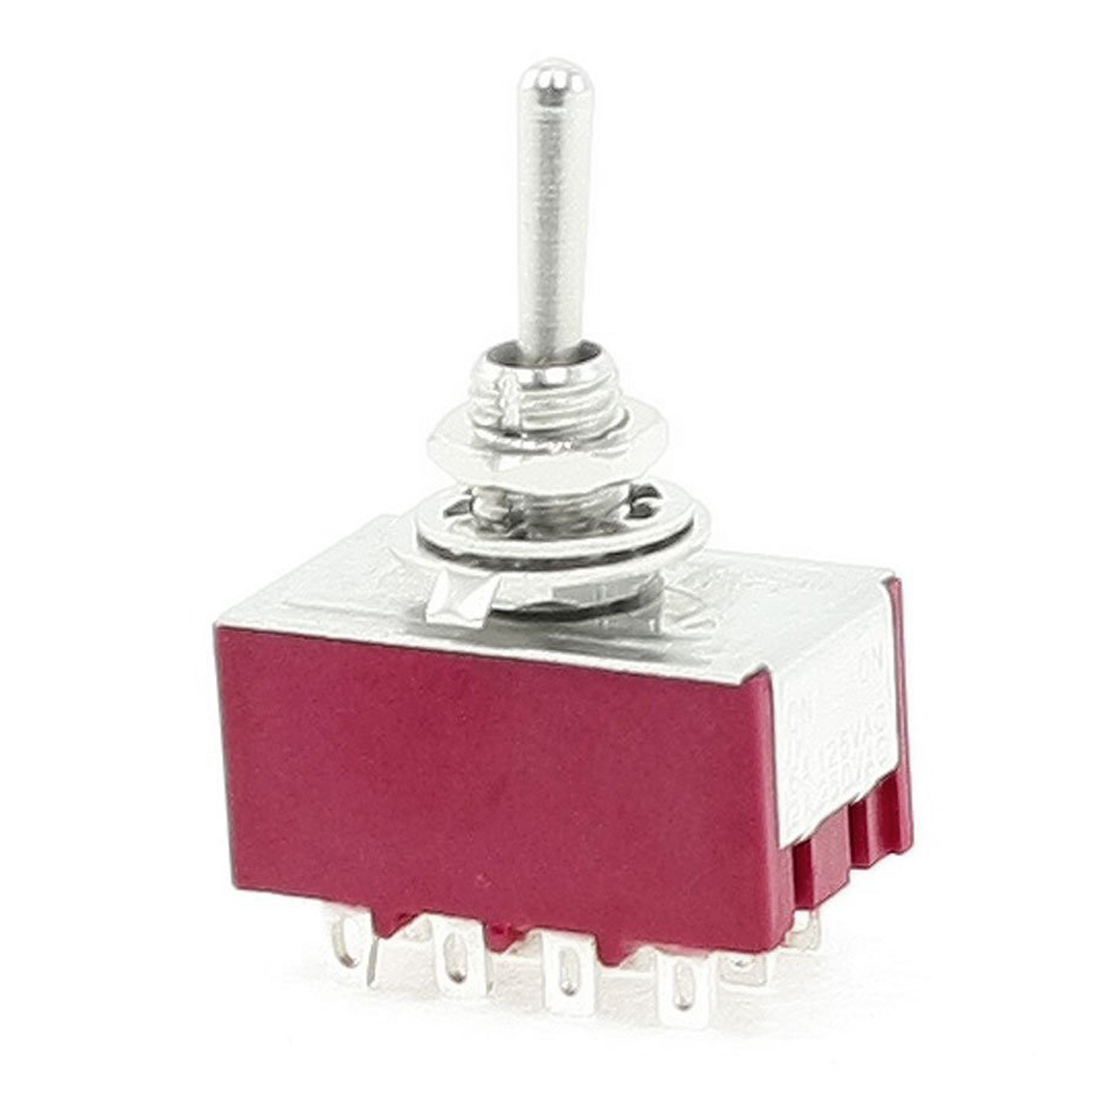 Hot sale6A/125VAC 2A/250VAC 12 Pin 4PDT ON/ON 2 Position Mini MTS-402 Toggle Switch<br><br>Aliexpress